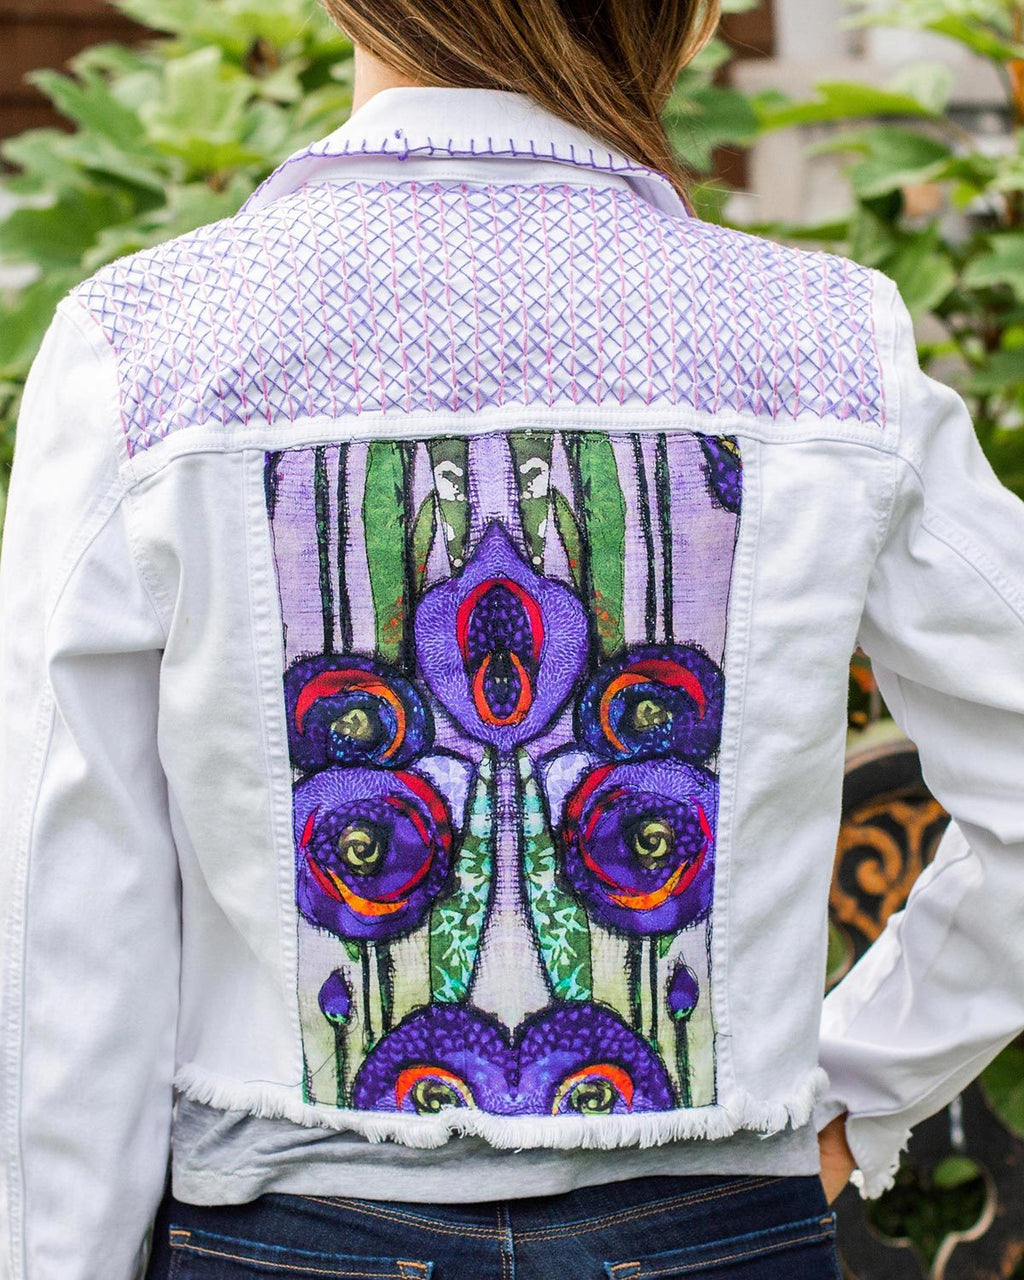 Garden OOAK White Denim Distressed Jacket - Small